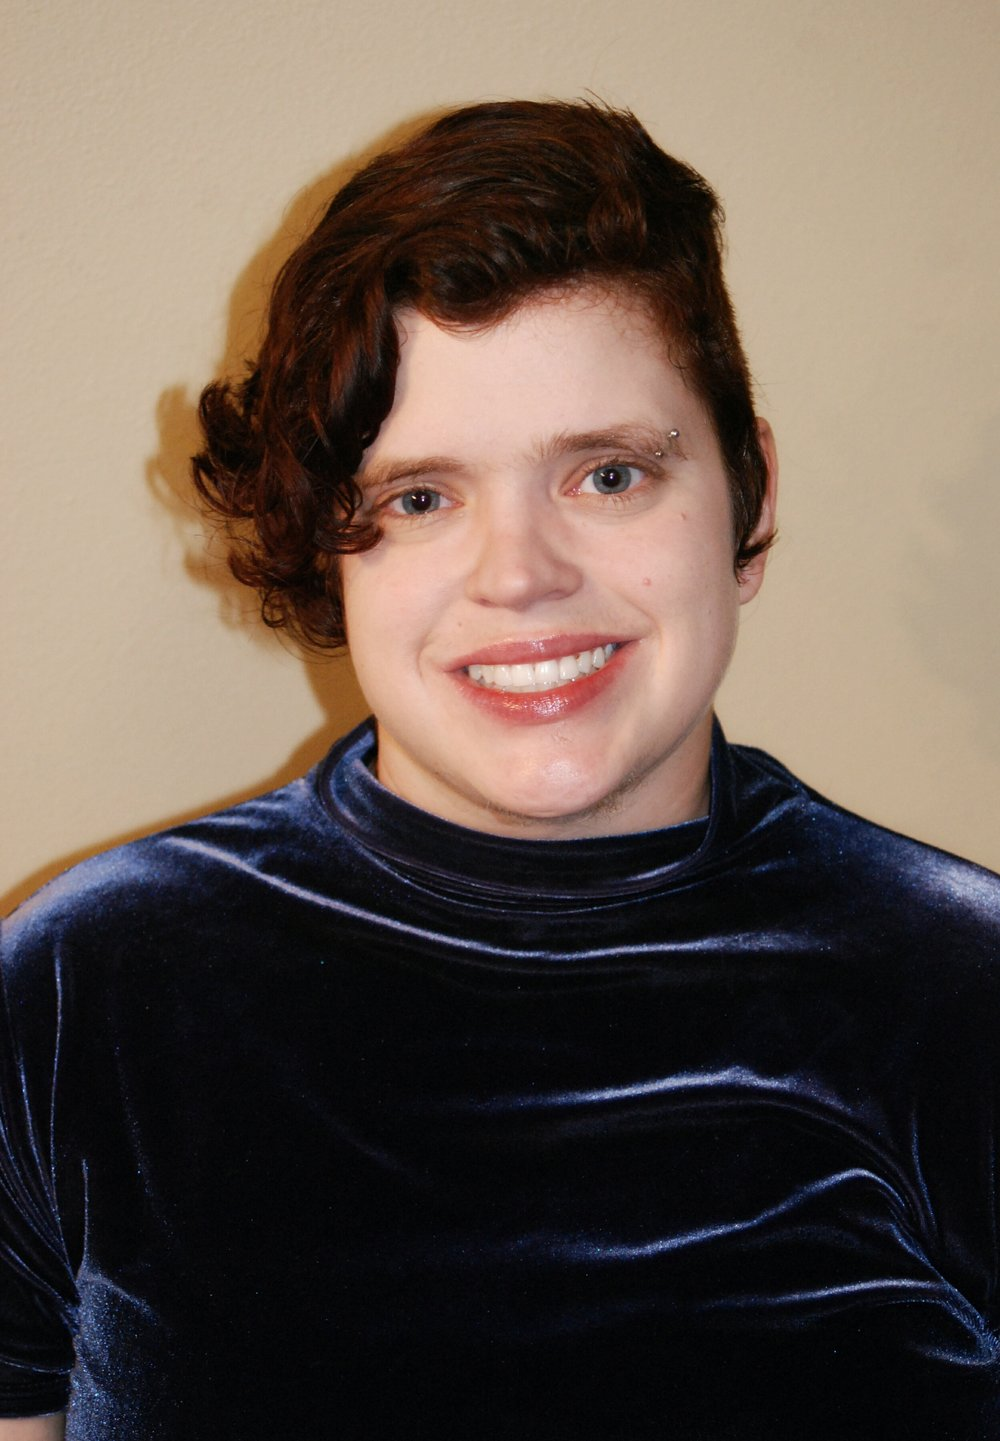 Smiling person with short curly hair and a blue shiny shirt.